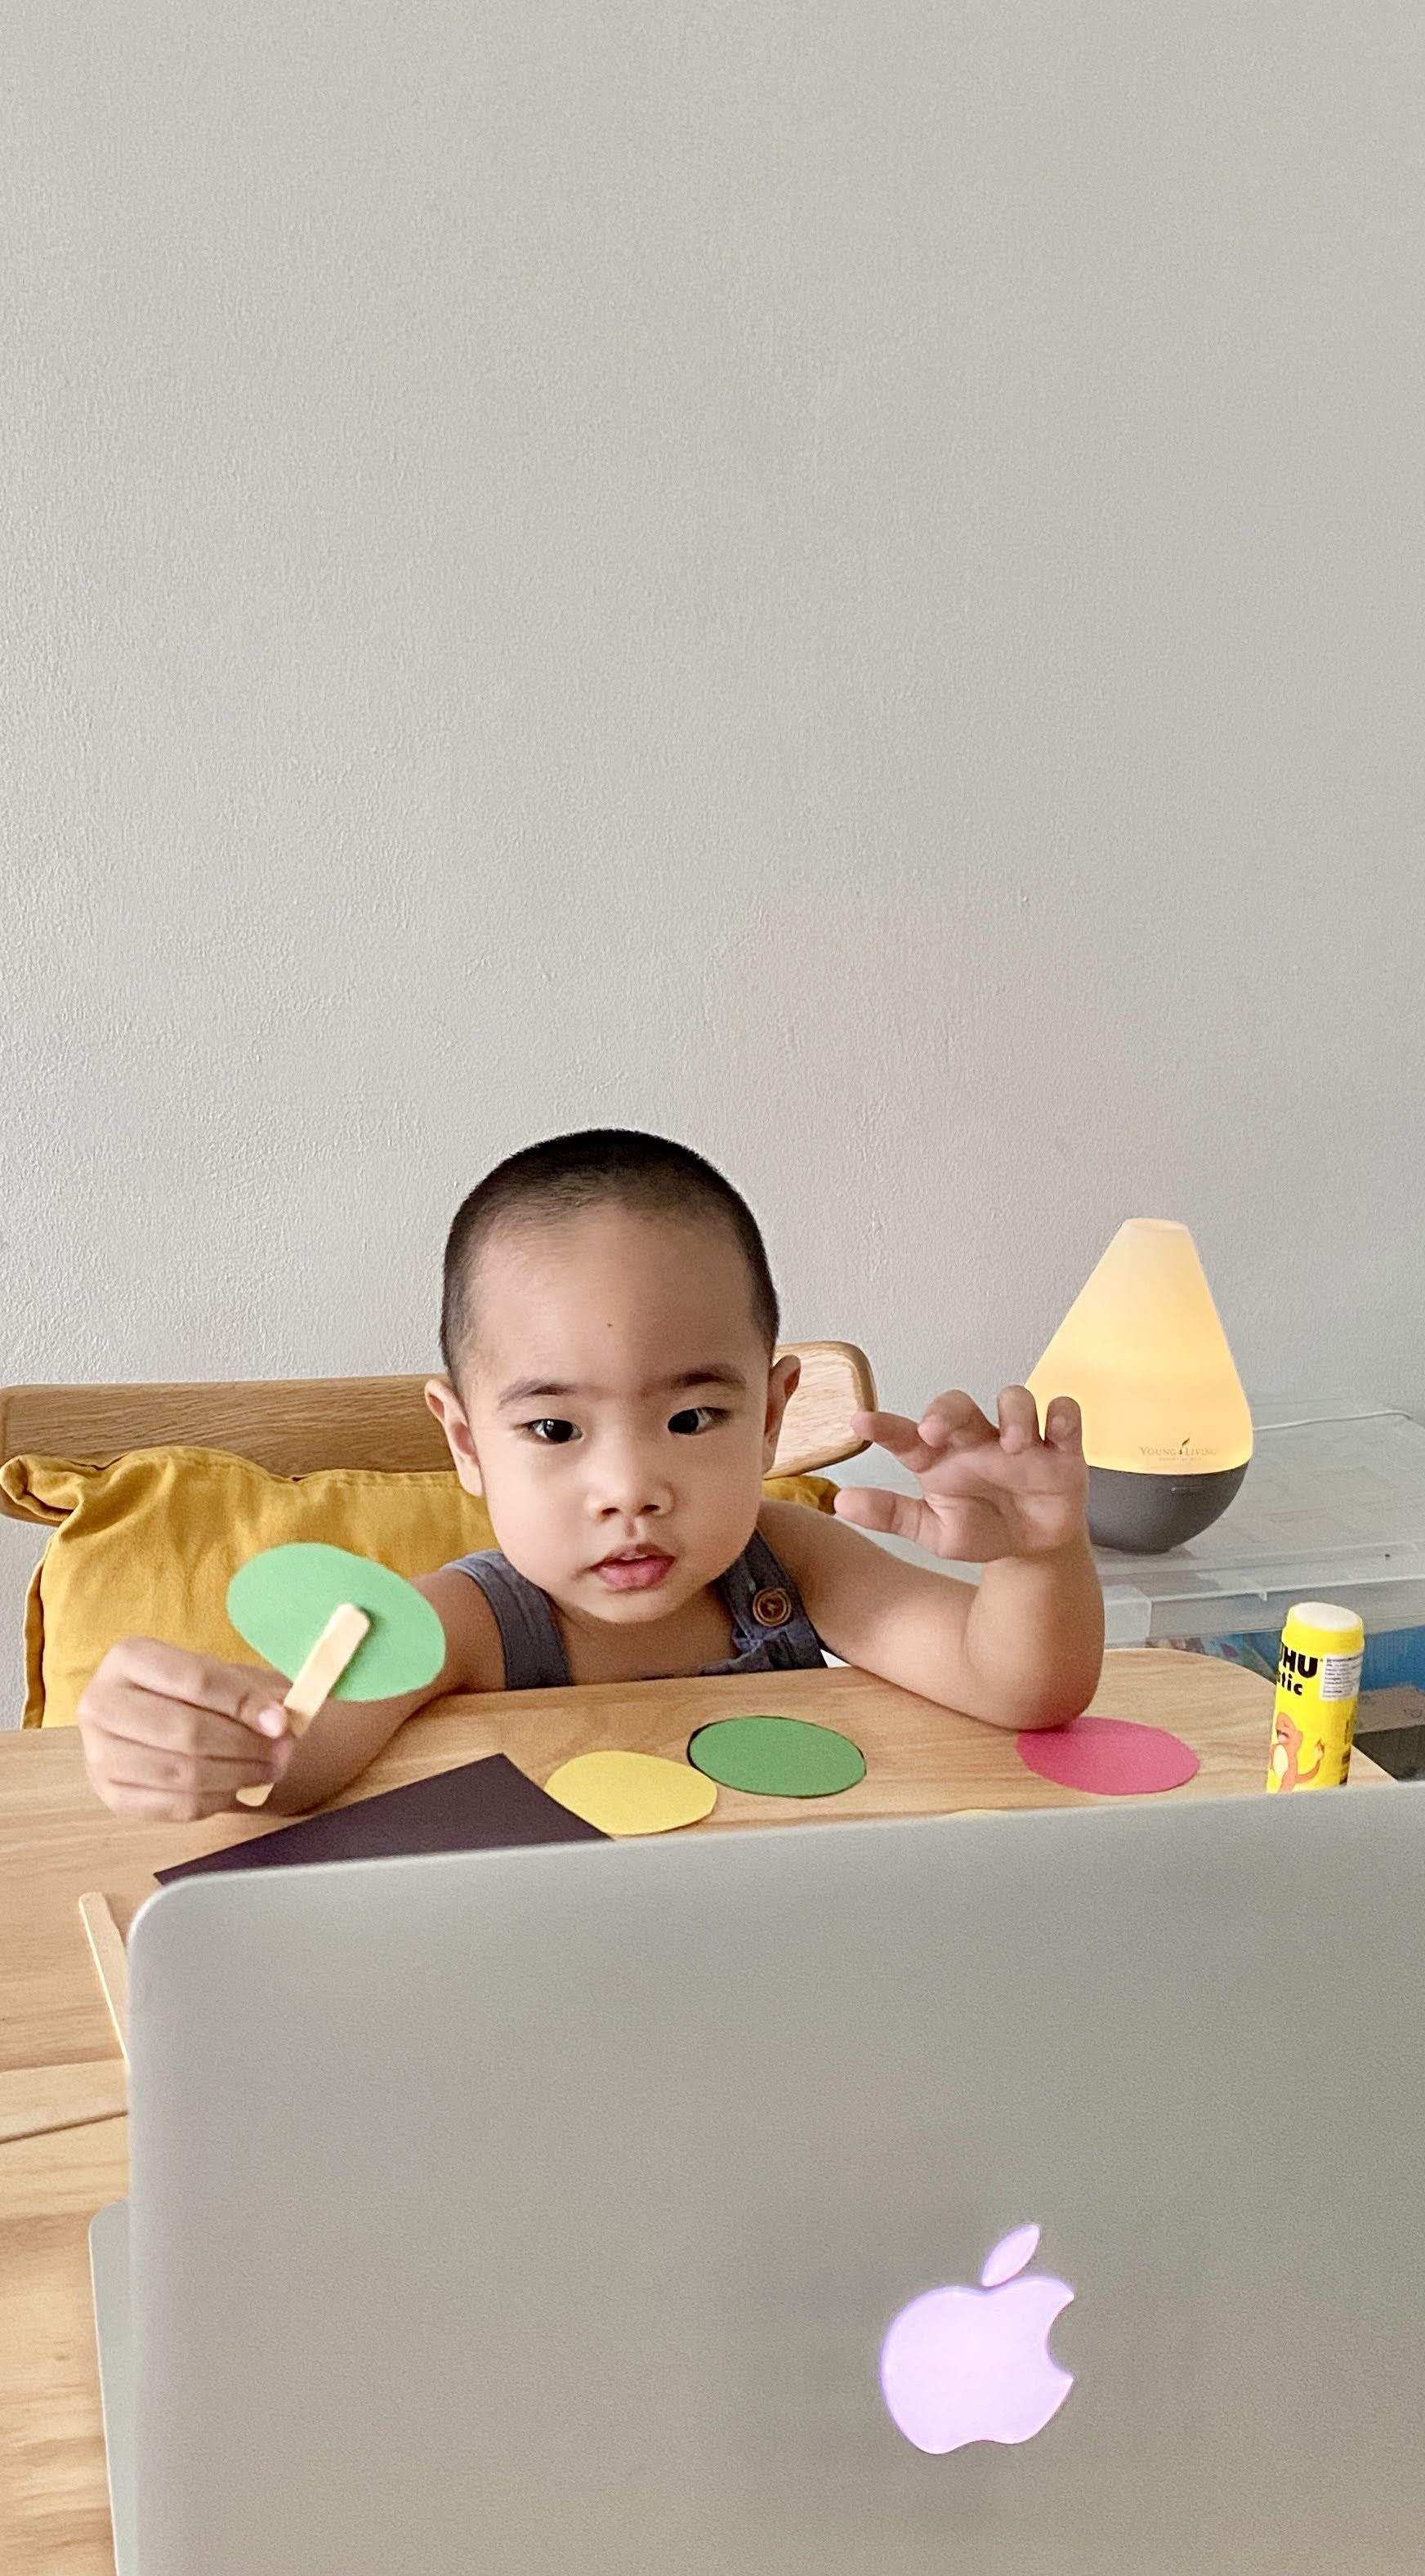 Toddler doing crafts for his online class